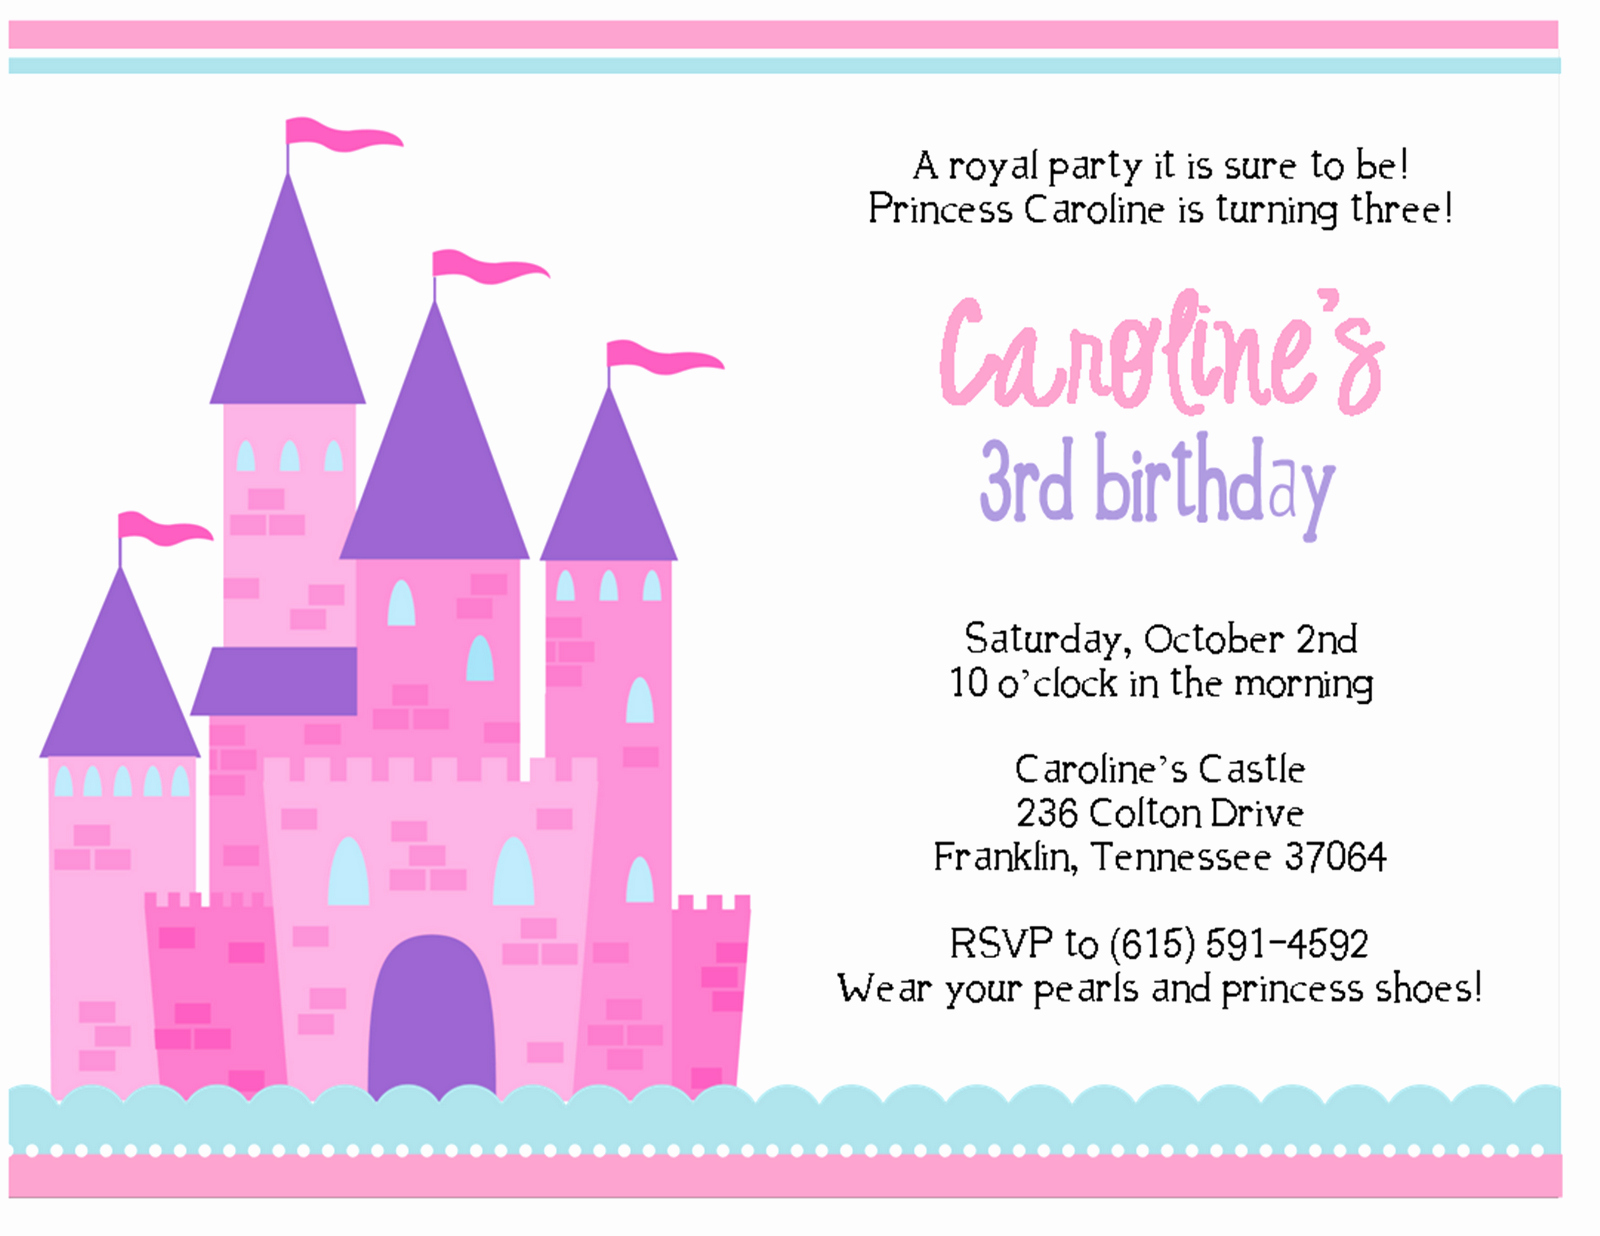 Royal Ball Invitation Template Free Beautiful the Sweet Peach Paperie Royal Princess Parties